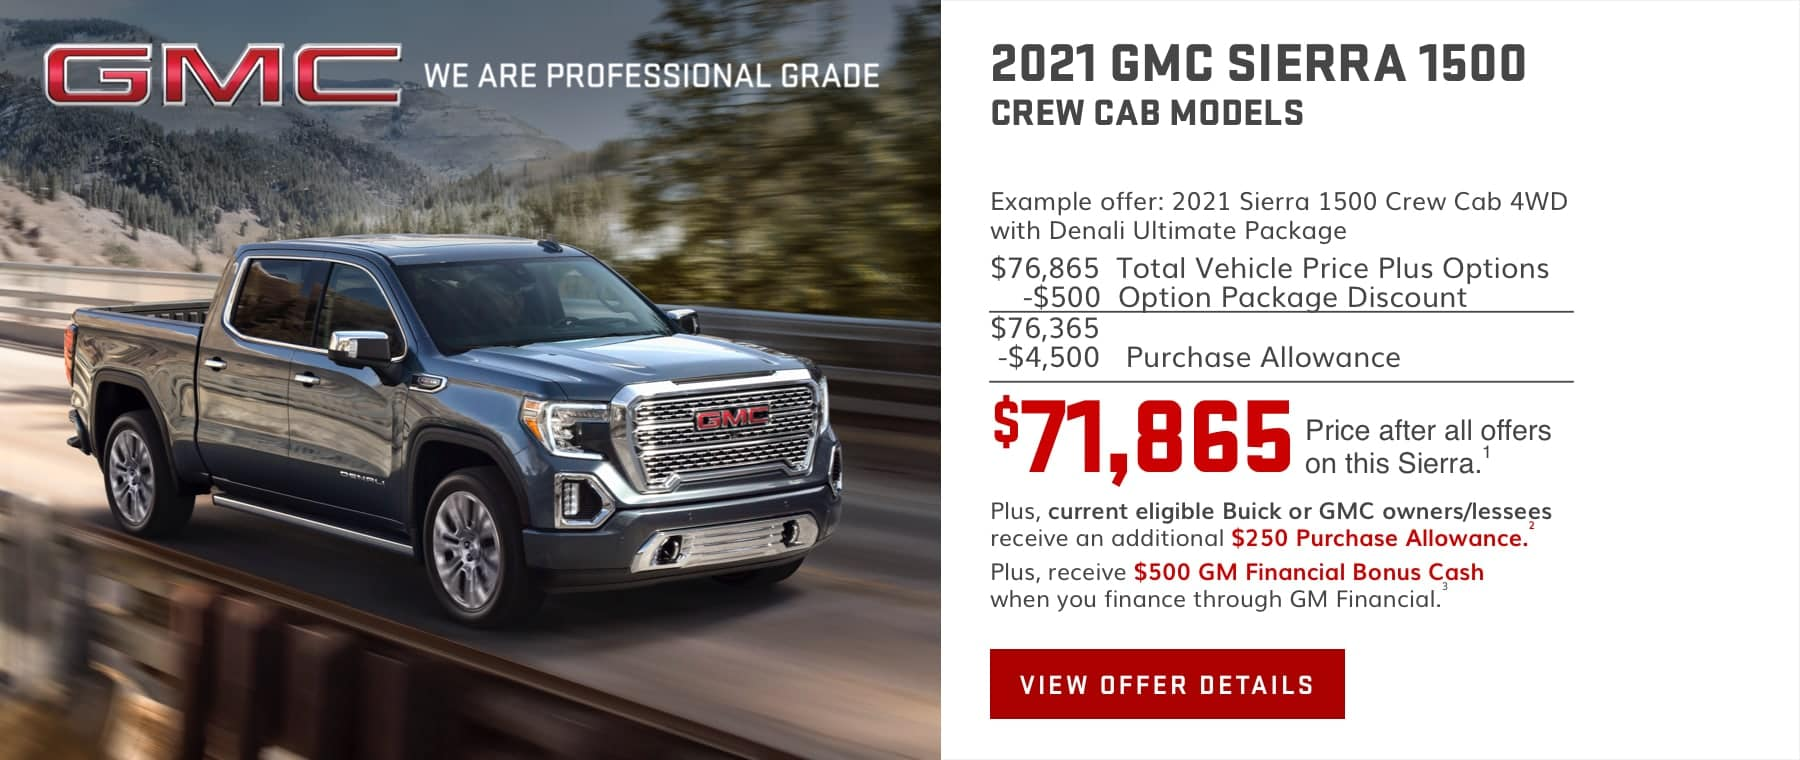 $71,865 Price after all offers on this Sierra.1 Plus, current eligible Buick or GMC owners/lessees receive an additional $250 Purchase Allowance.2 Plus, receive $500 GM Financial Bonus Cash when you finance through GM Financial.3